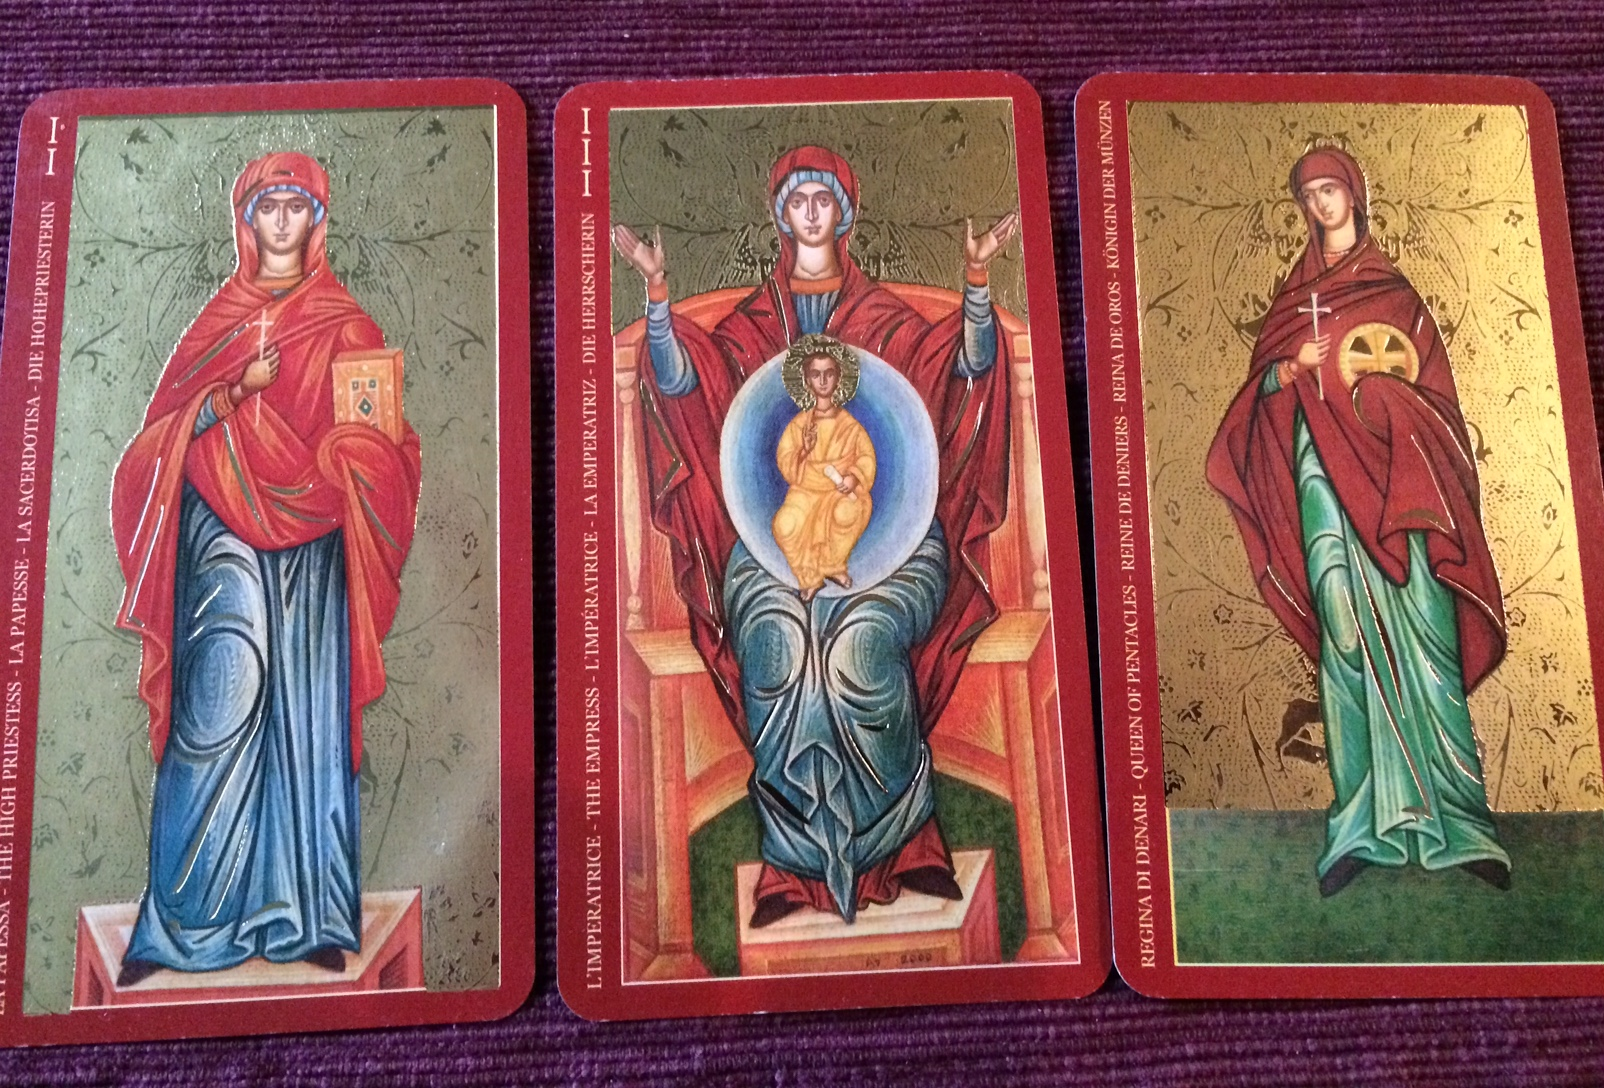 """The Golden Tarot of the Tsar"" (by A.A.. Atanassov and available thru Lo Scarabeo) depicts the Mother of God as the Empress, St. Parasceva as the High Priestess, and an anonymous woman martyr as the Queen of Pentacles."